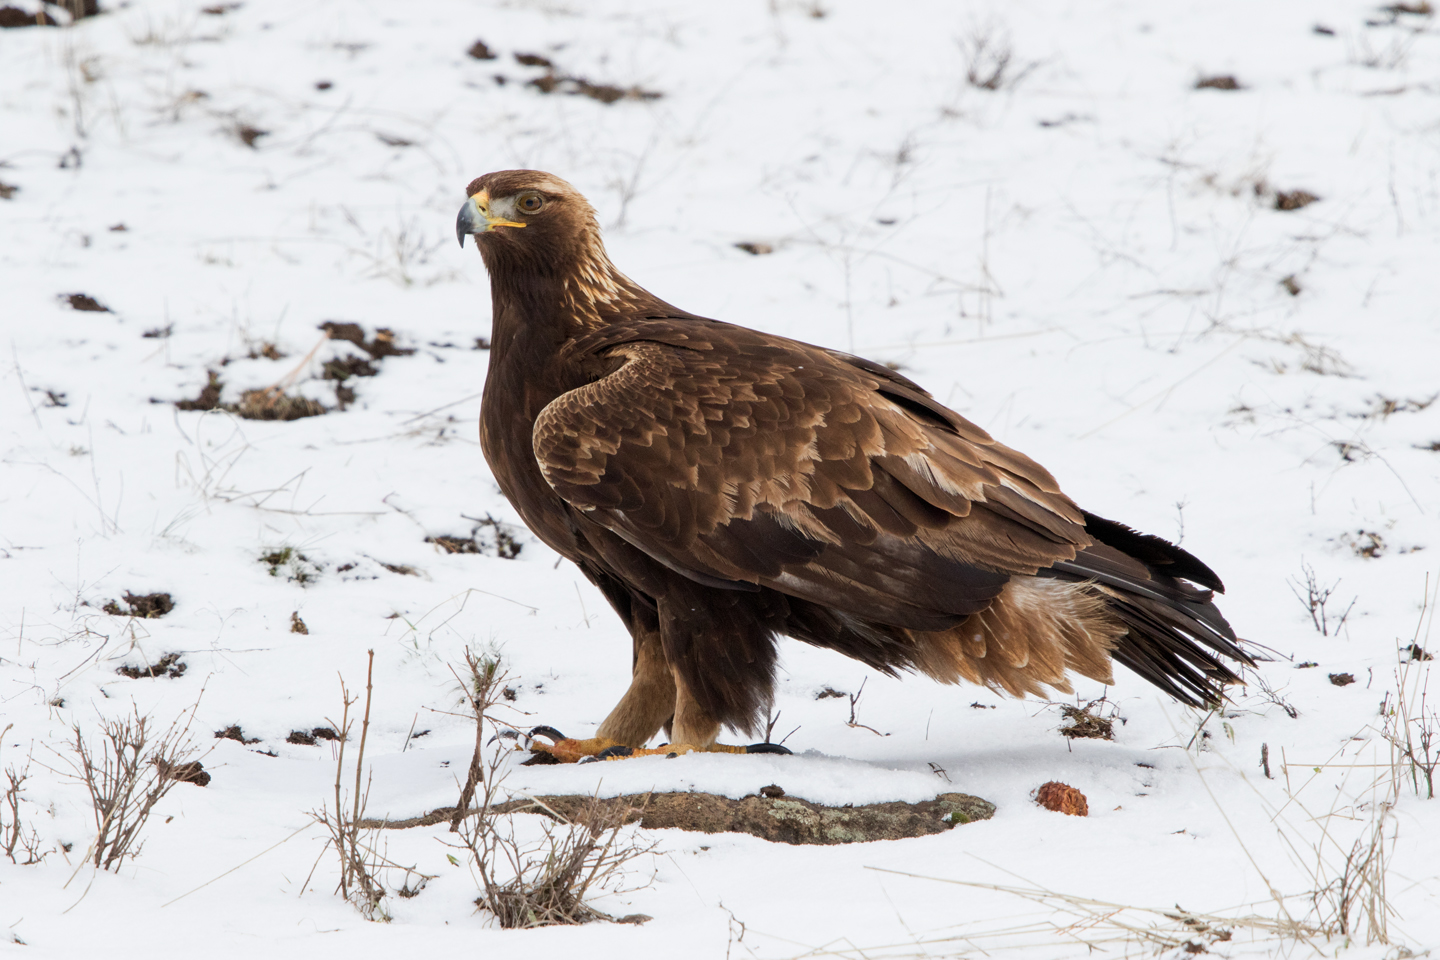 It is unusual for a golden eagle to tolerate a photographer so nearby.